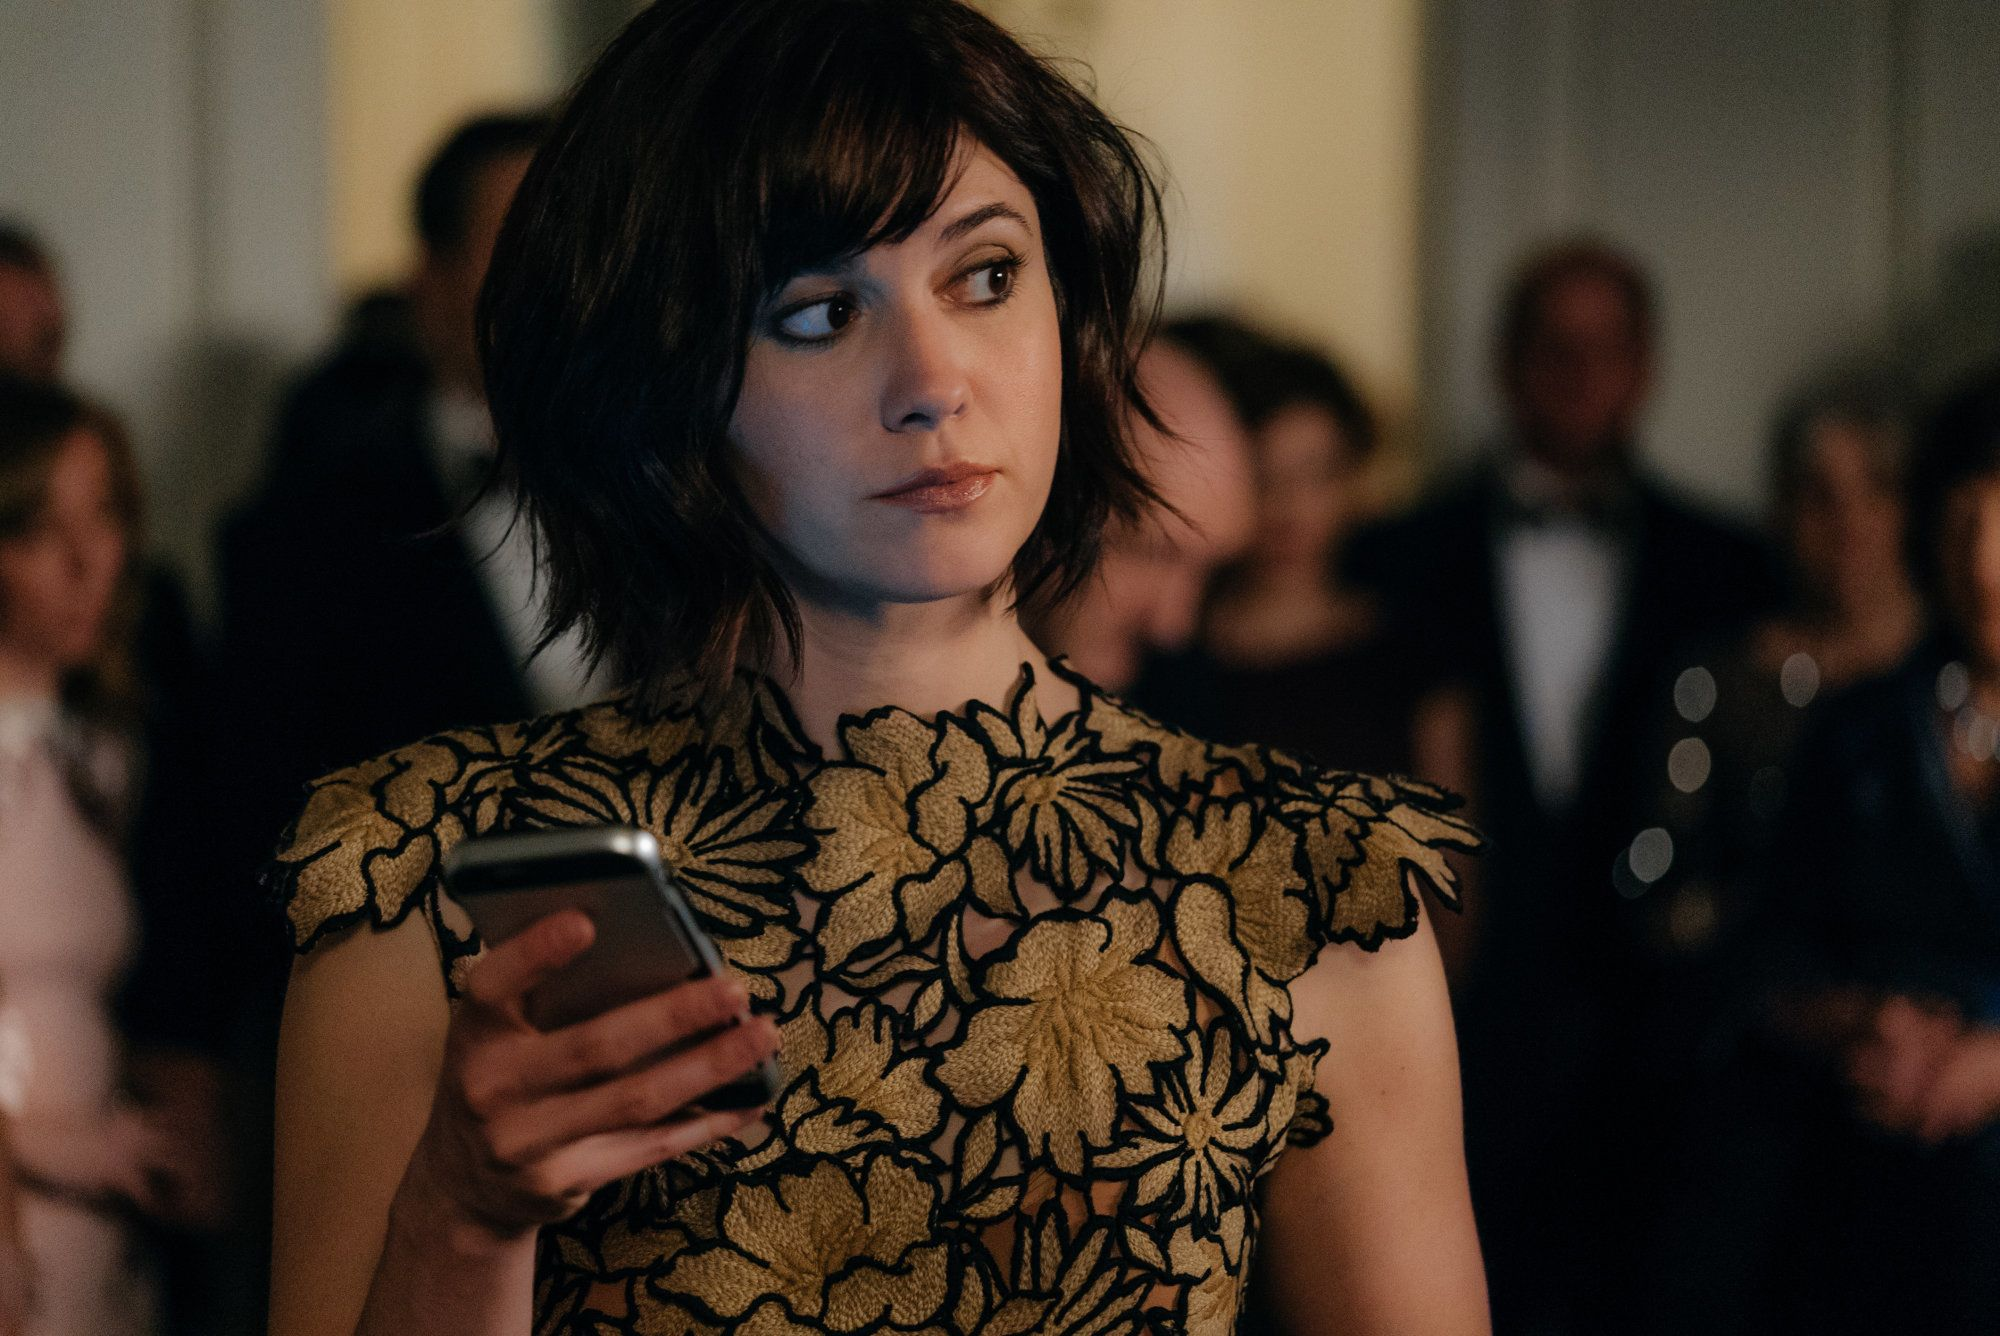 Mary Elizabeth Winstead as Laurel Healy, an unwilling member of a political family who quickly realizes something bizarre is